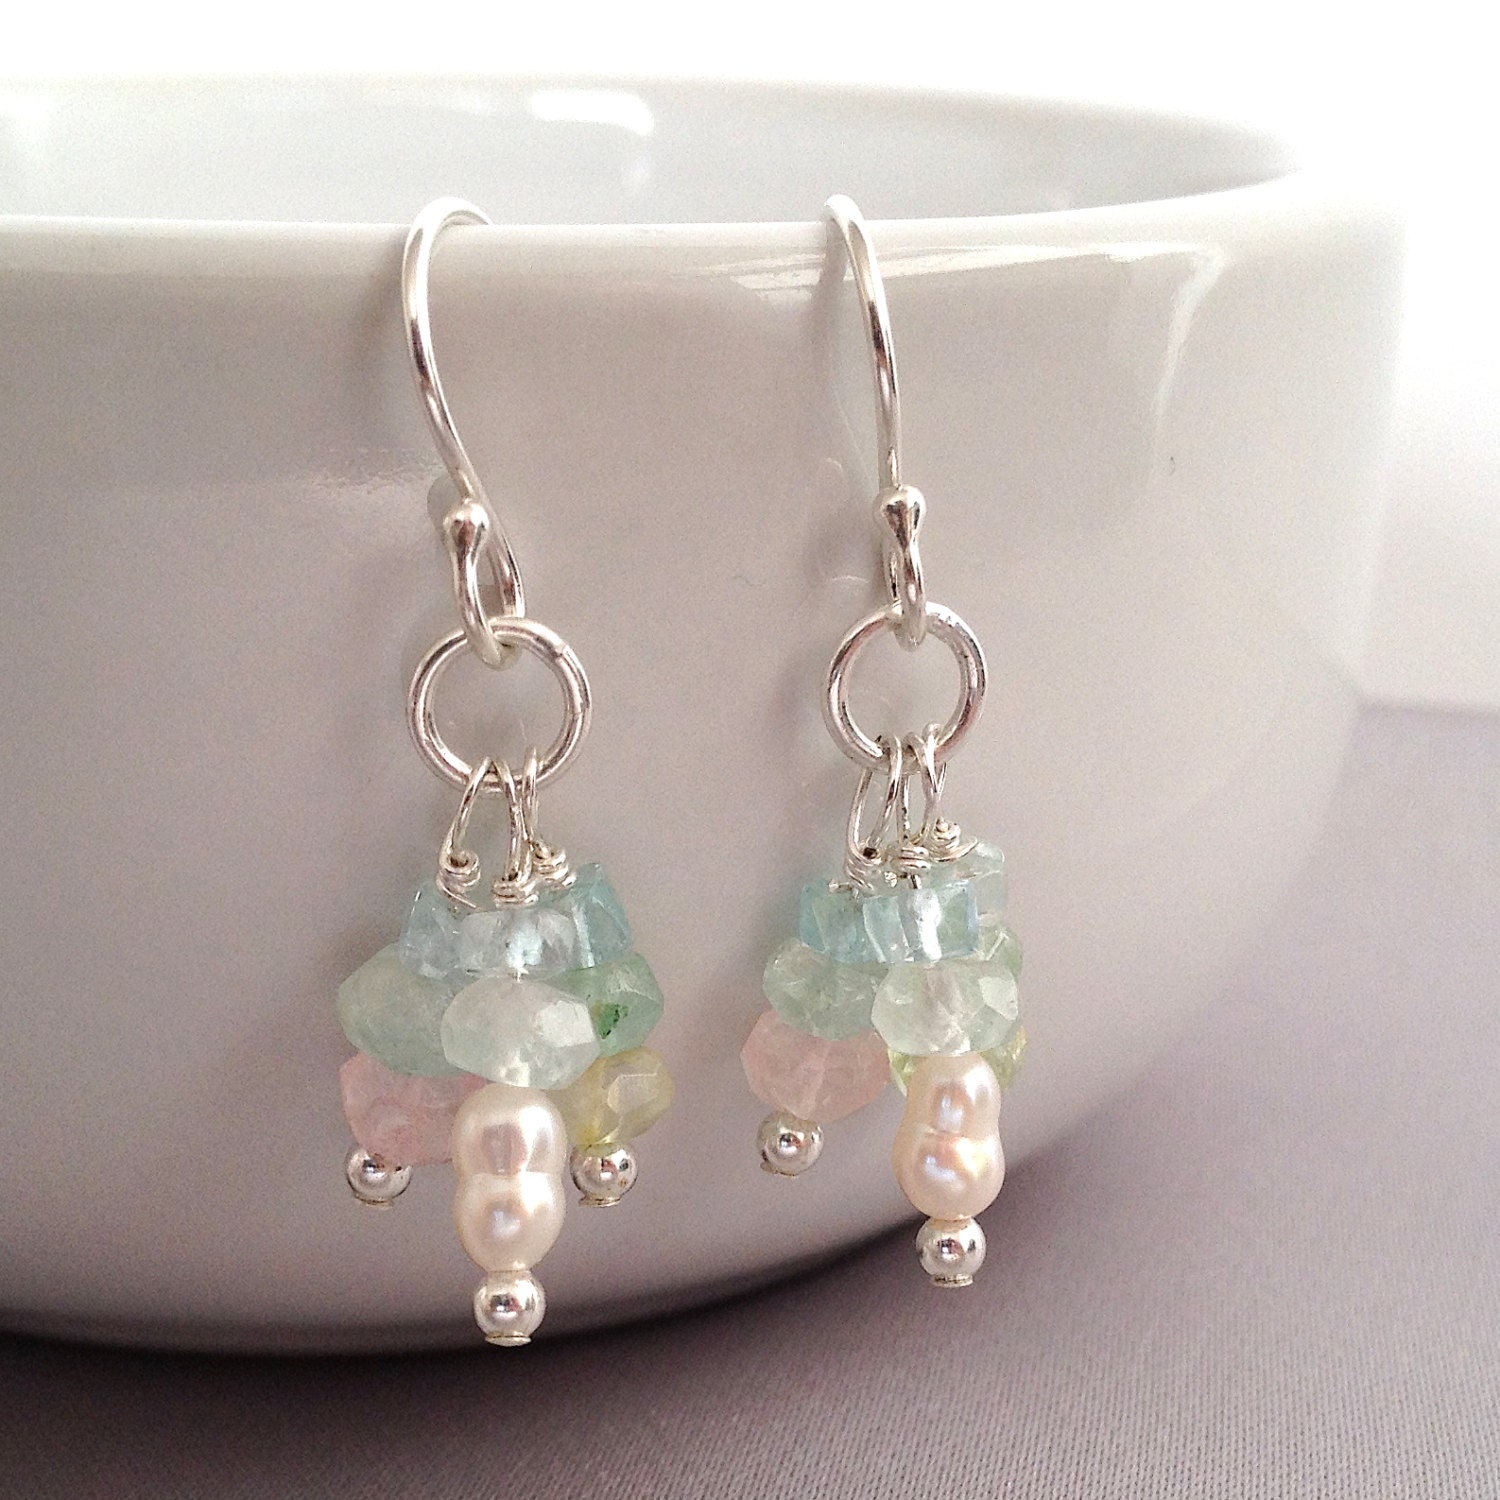 Dangly multicoloured natural aquamarine sterling silver earrings